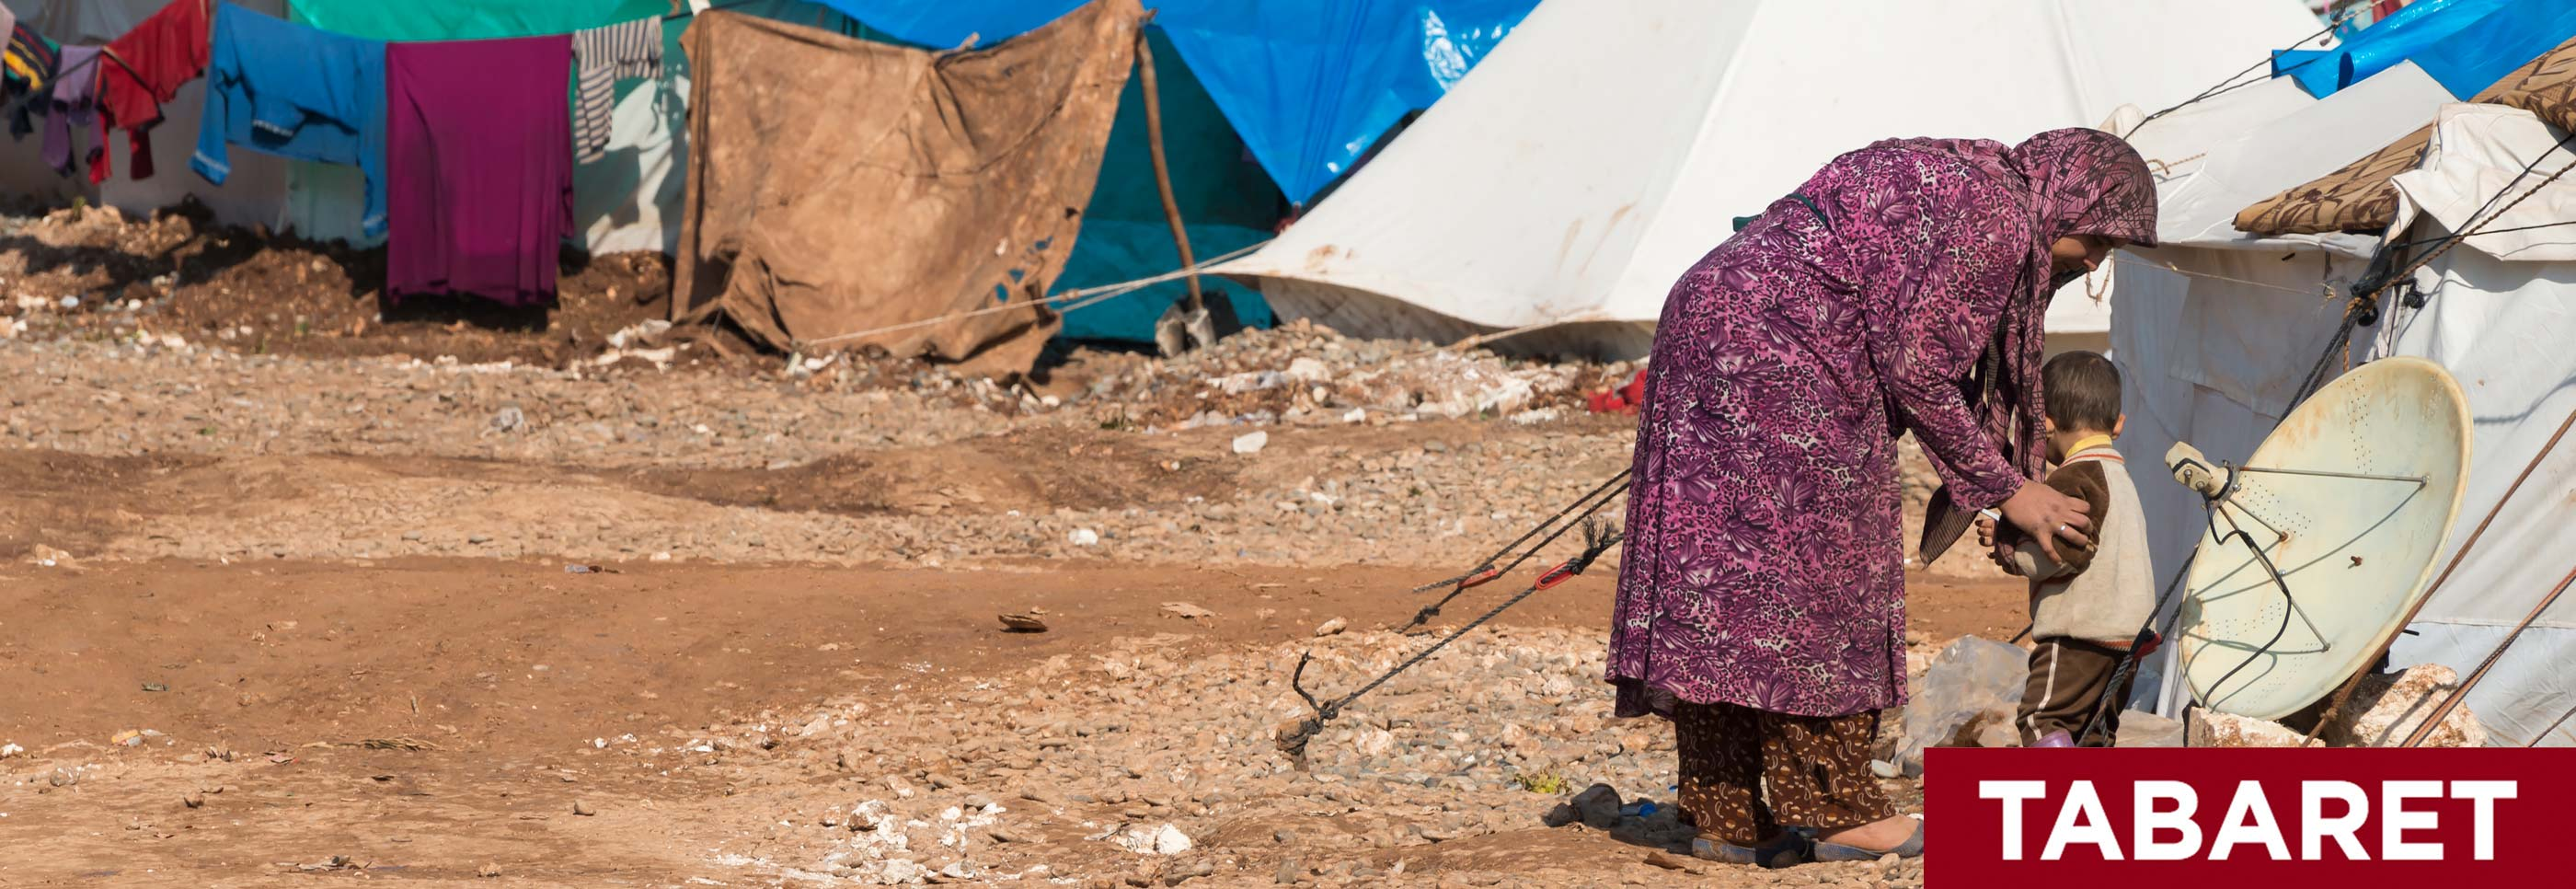 A woman and child stand in front of a sea of refugee tents in a desert